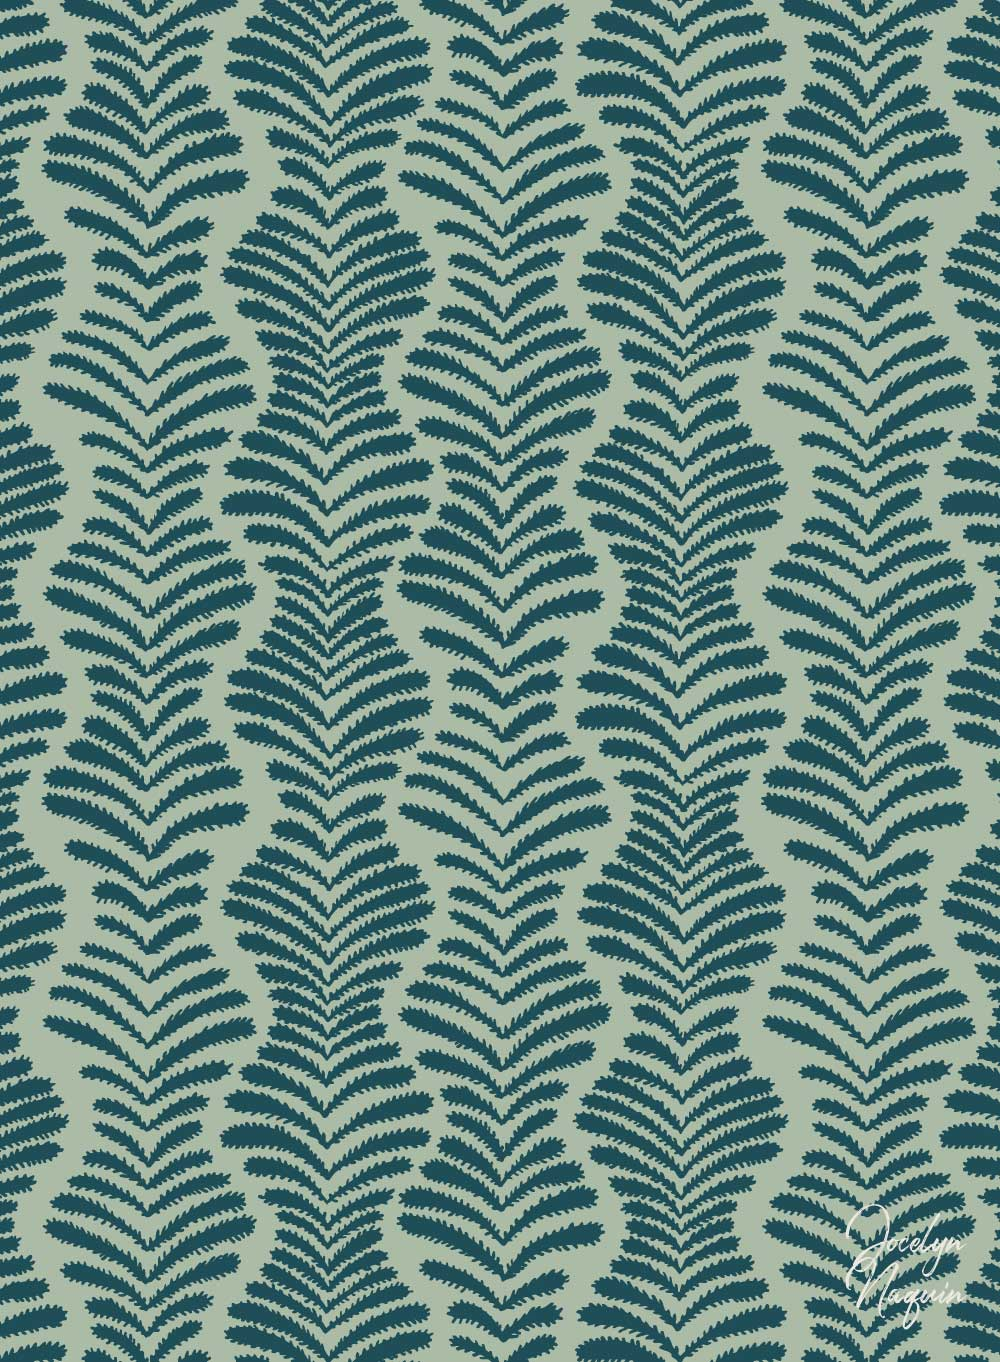 Sea Weed Surface Pattern Design